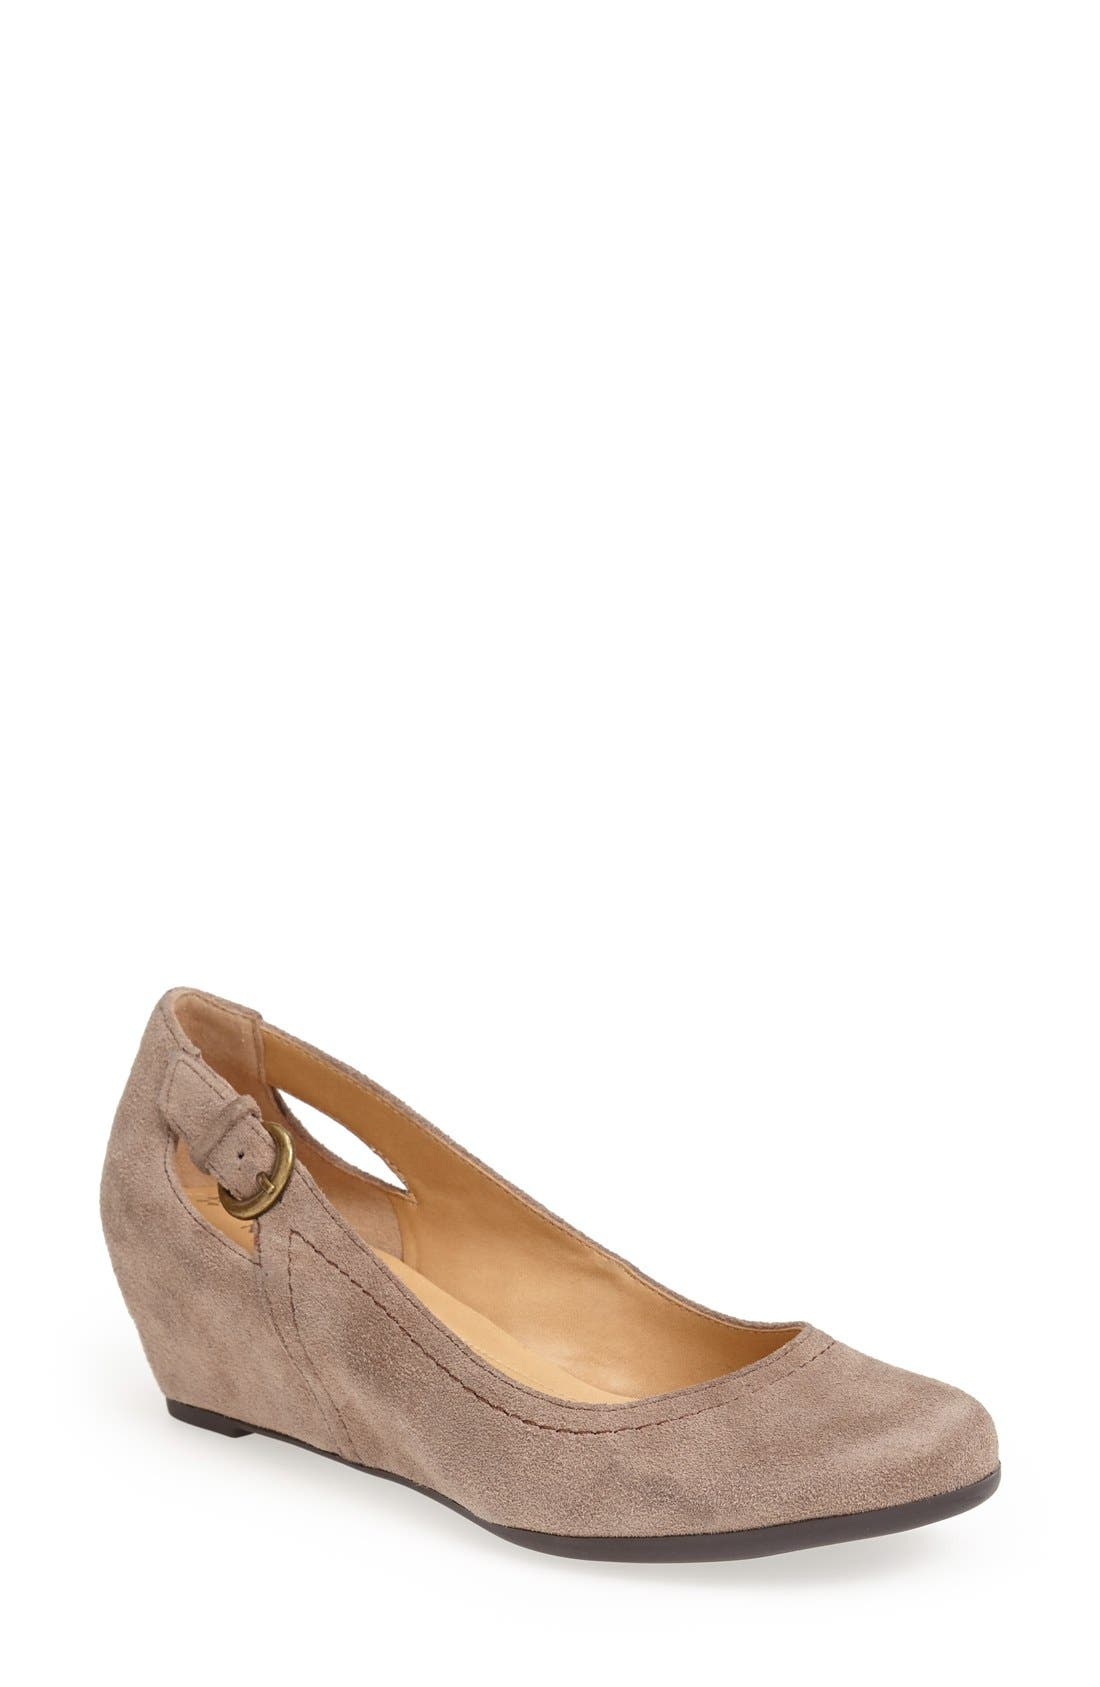 Main Image - Naturalizer 'Naja' Suede Pump (Women)